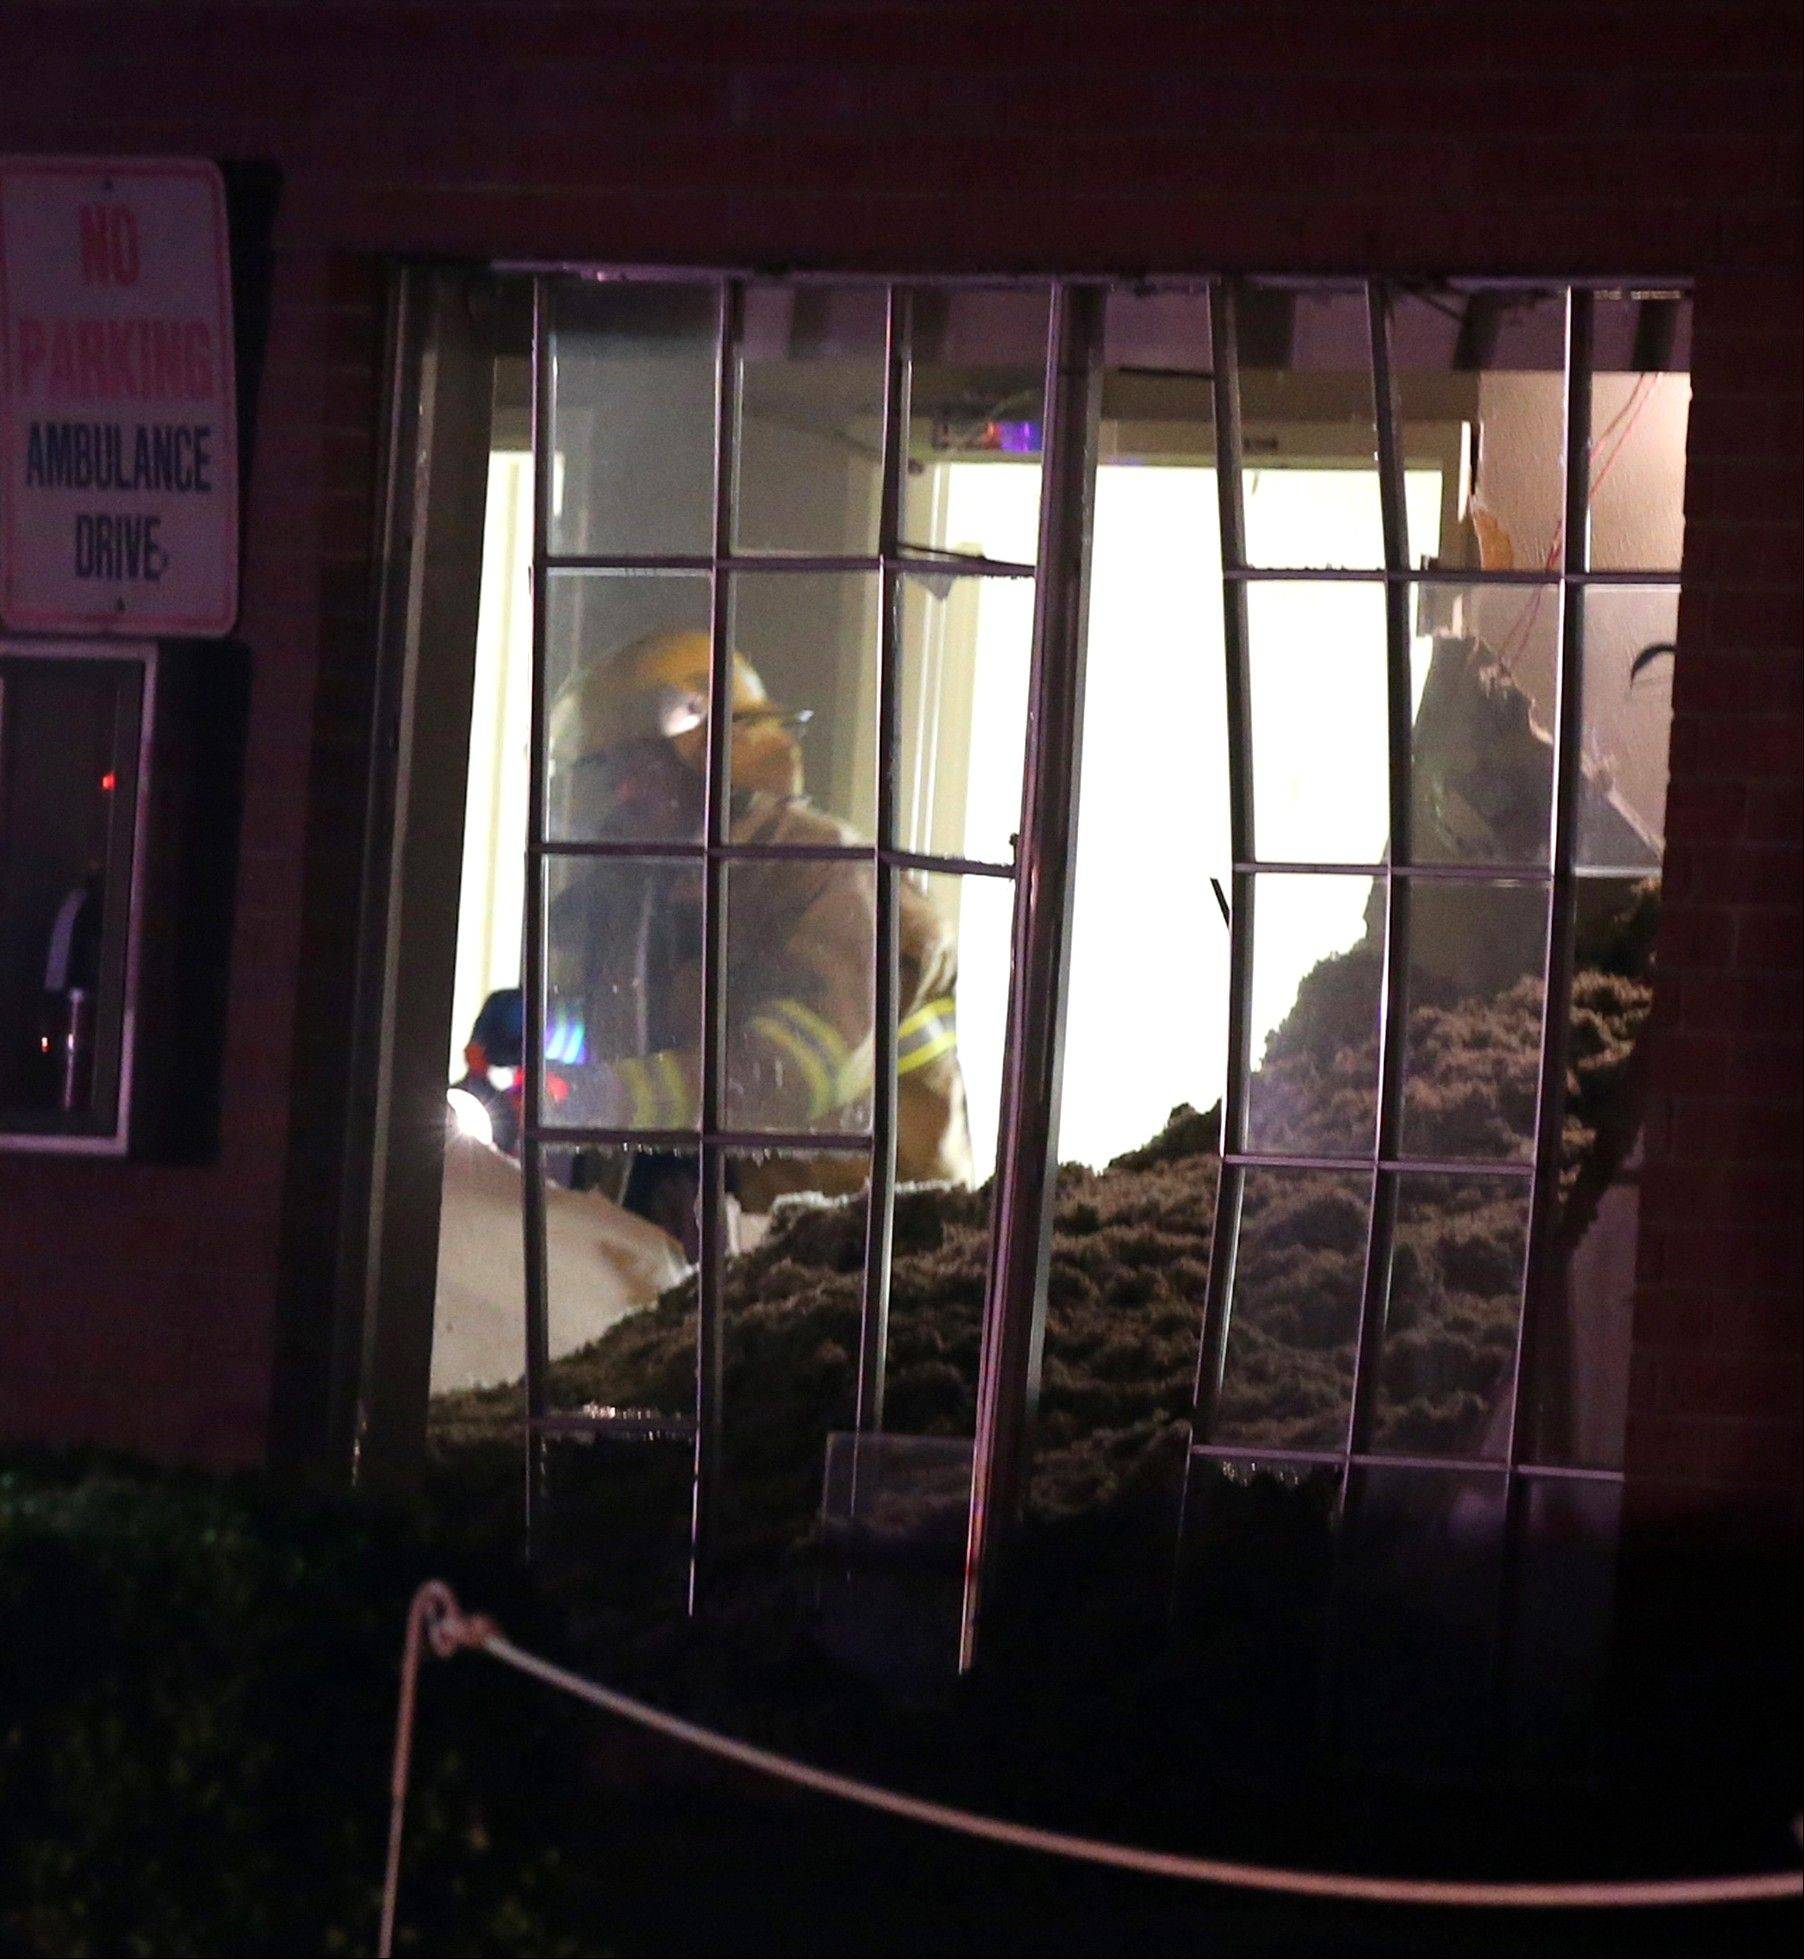 A firefighter searches a nursing home that was damaged after an explosion at a neary by fertilizer plant Wednesday.